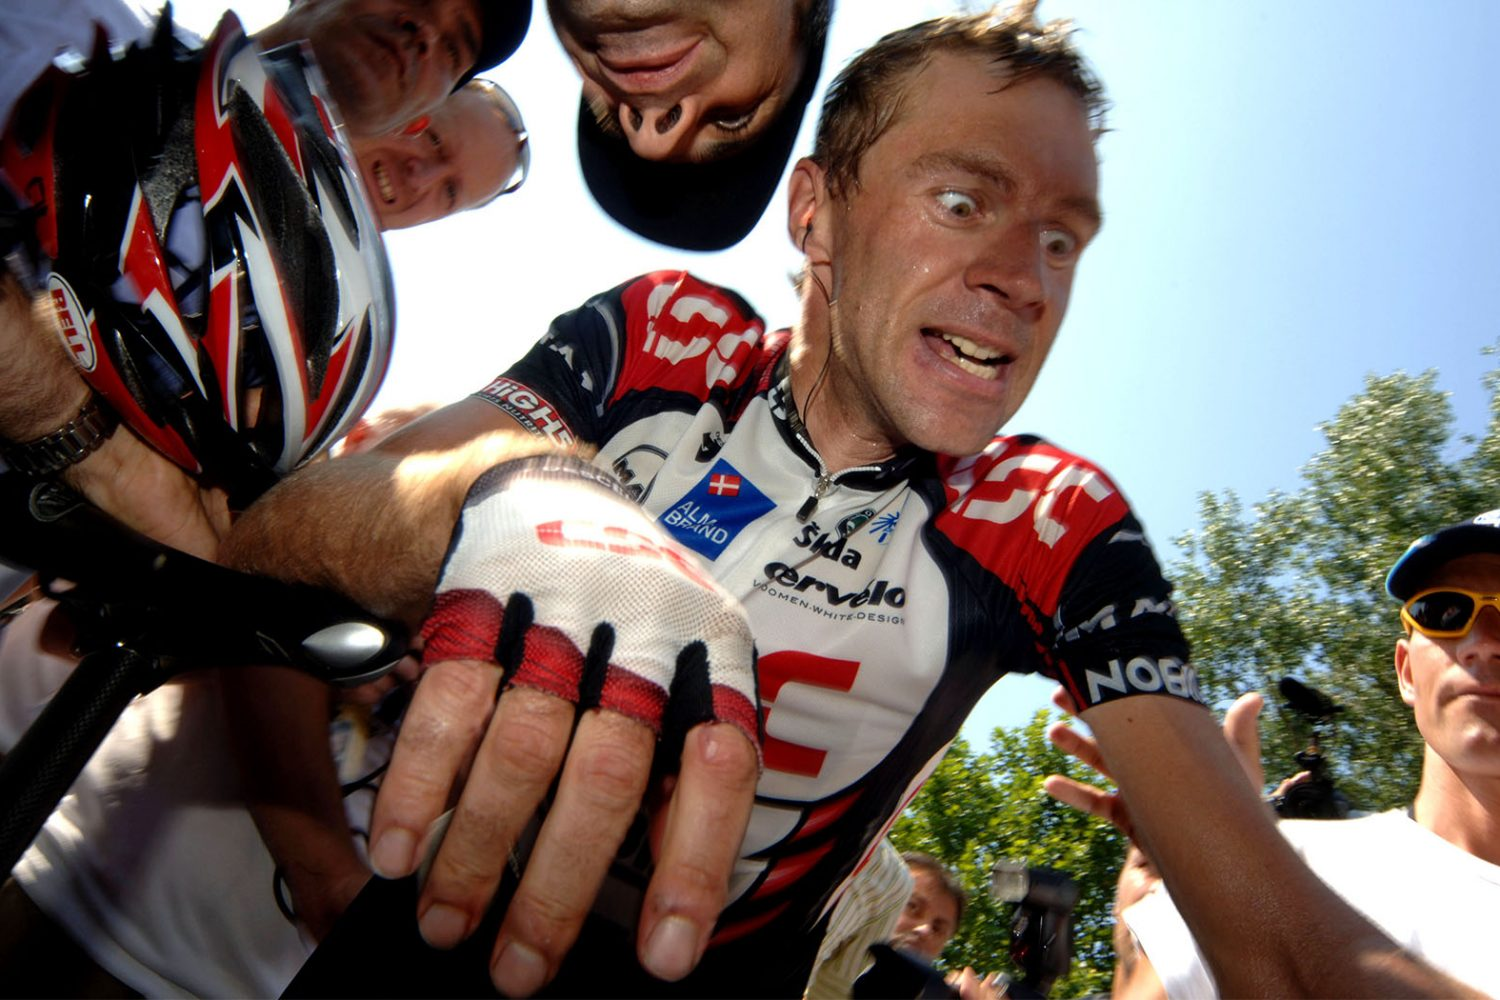 Jens Voigt shows emotion after winning a stage in the Tour de France 2006